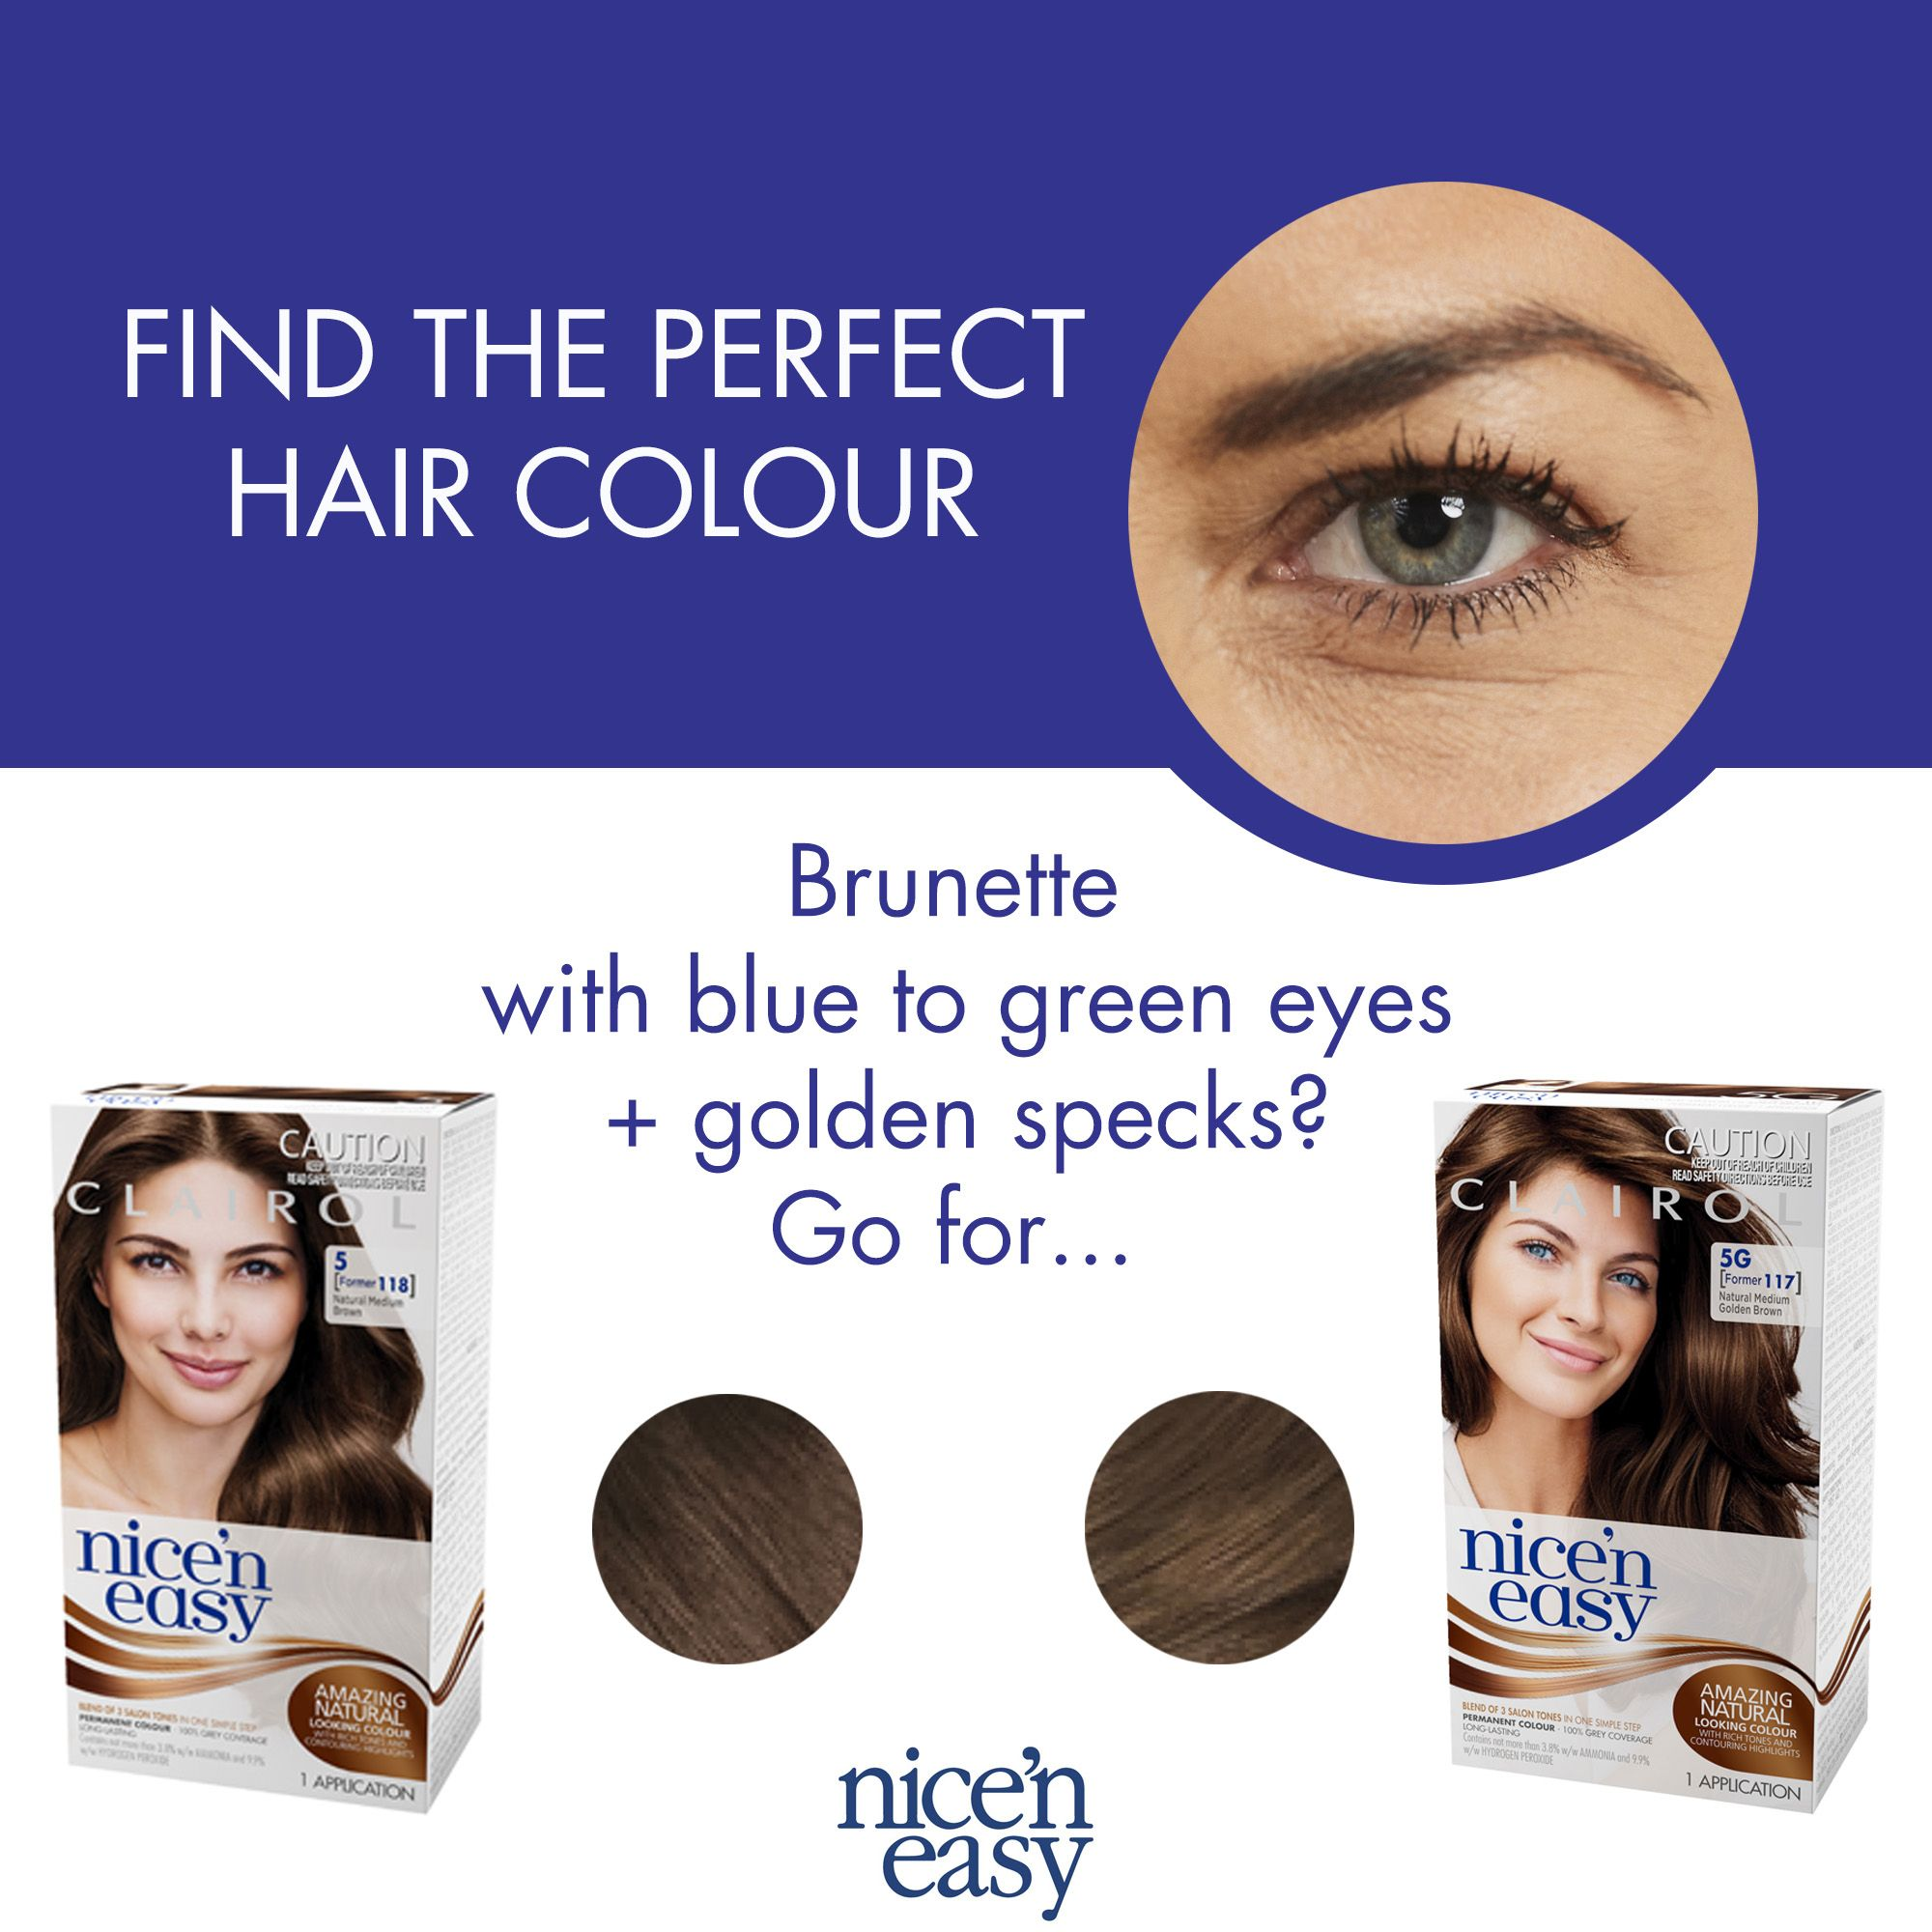 Hair Hack Are You A Brunette With Blue To Green Eyes Look For